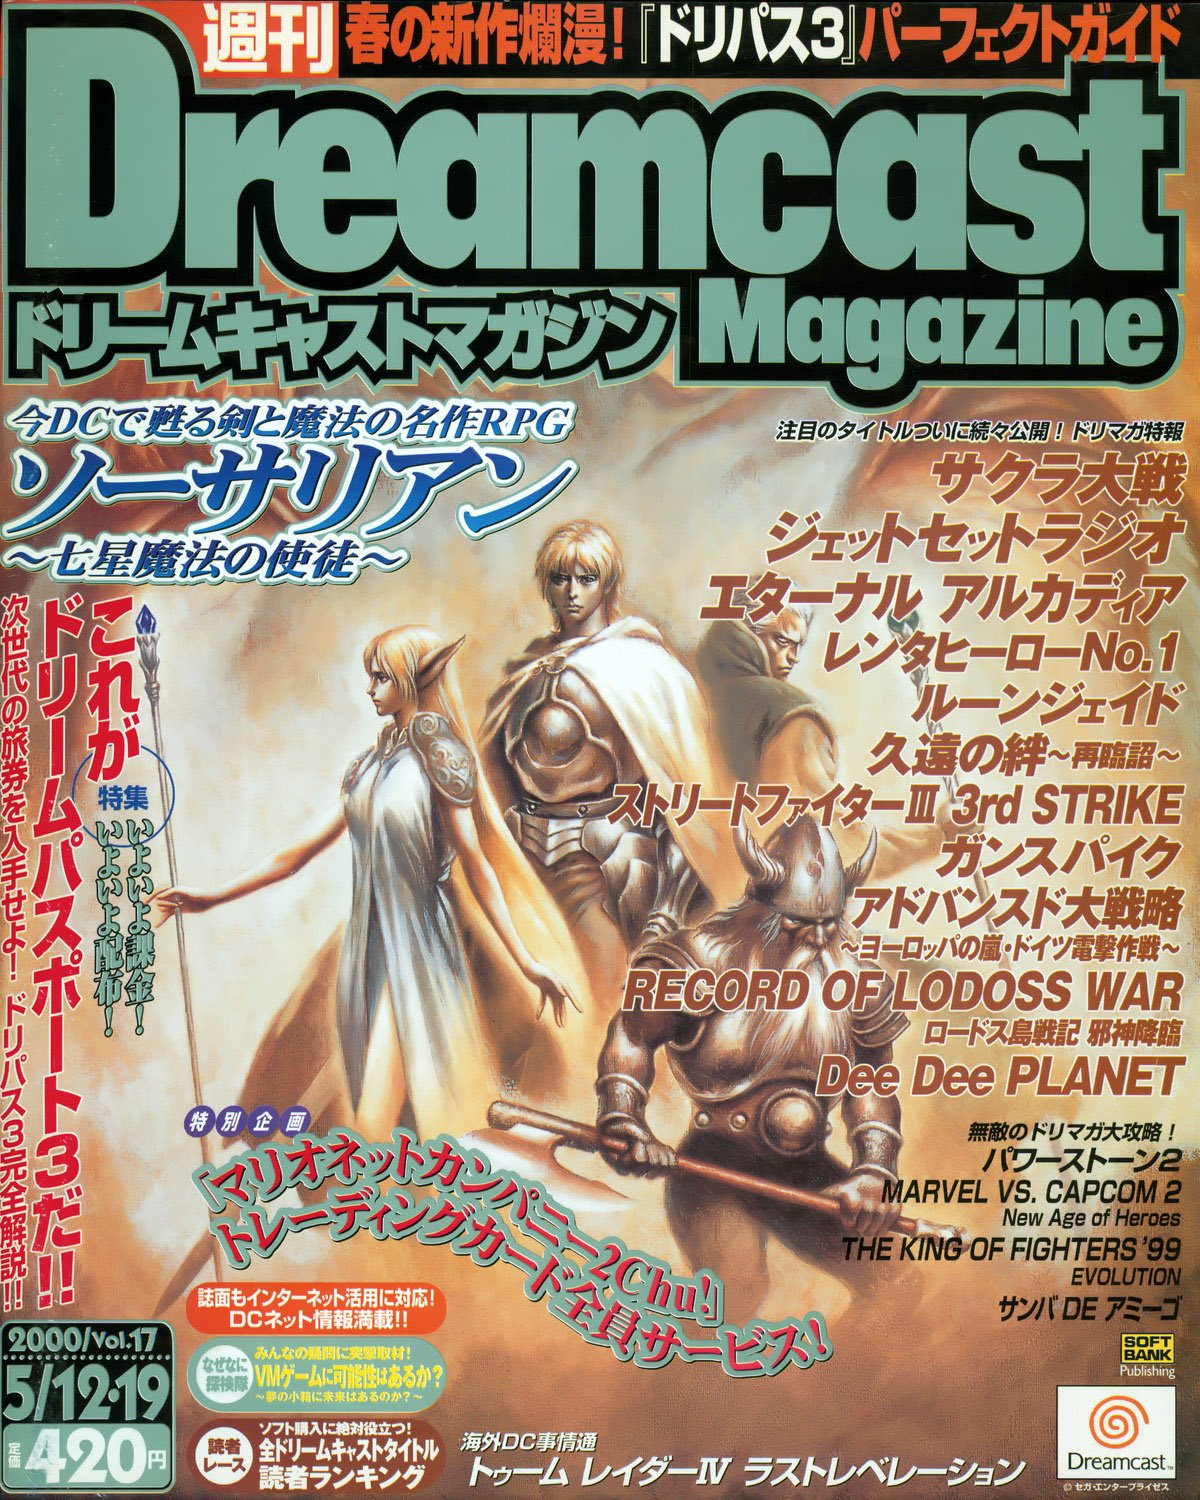 Dreamcast Magazine 069 (May 12/19, 2000)